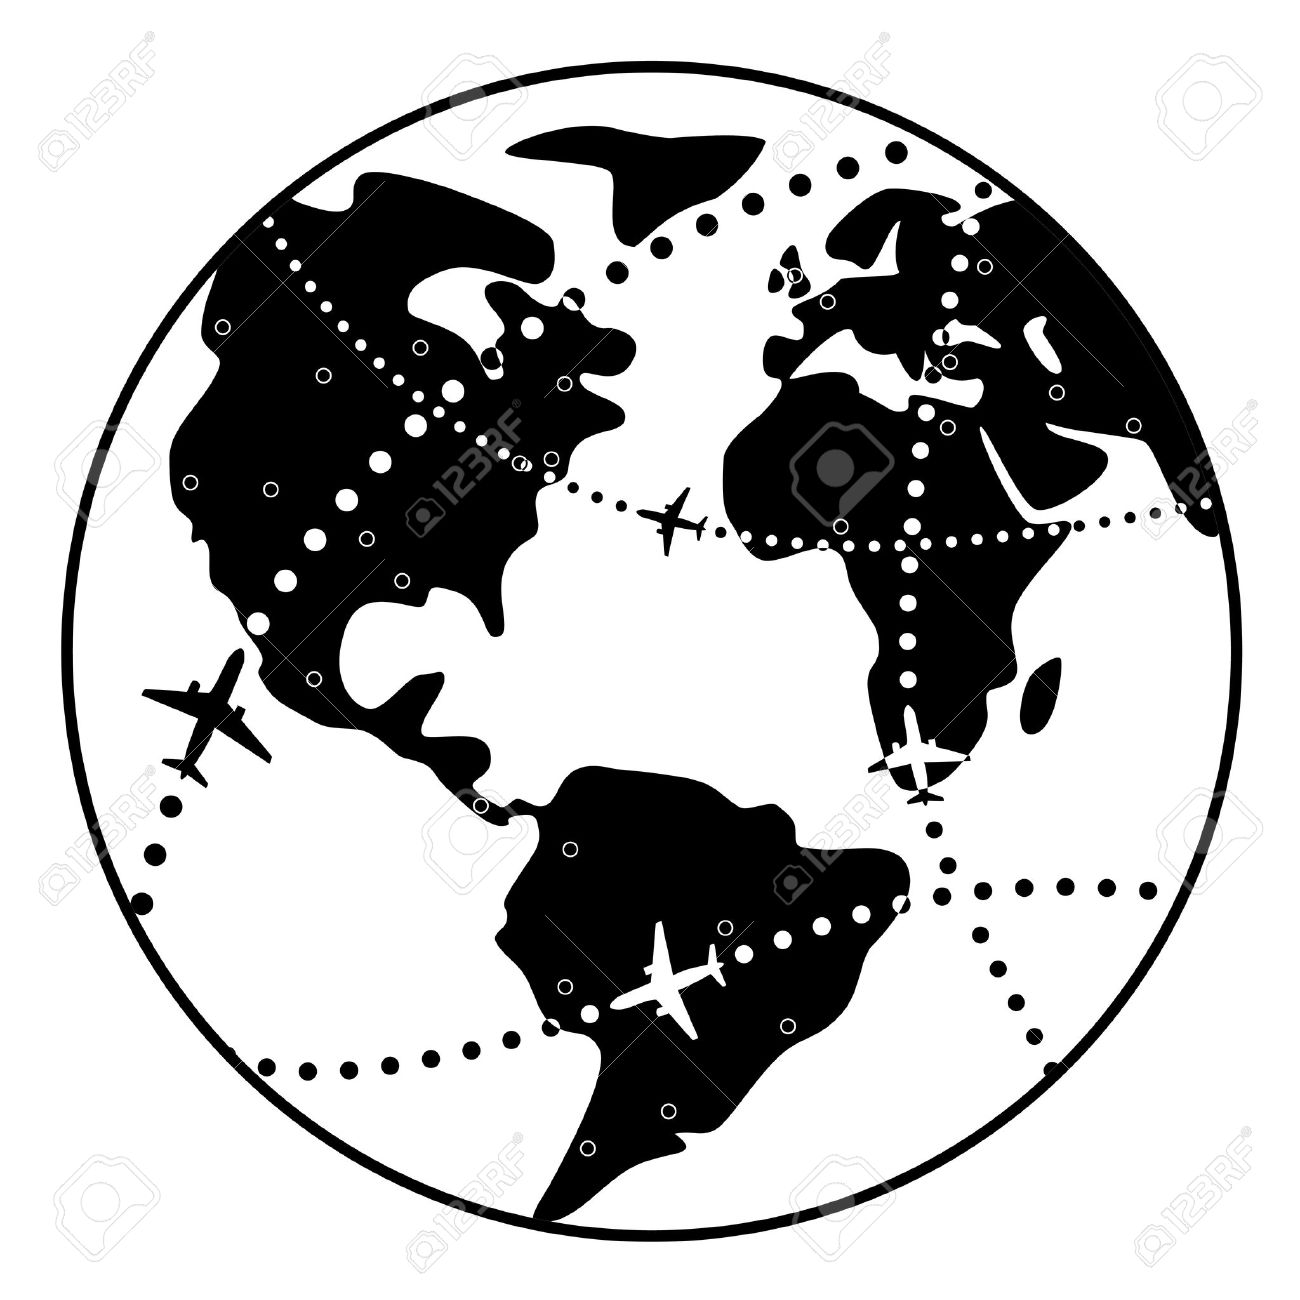 Vector Black And White Illustration Of Airplane Flight Paths Over Earth  Globe Stock Vector   12496993